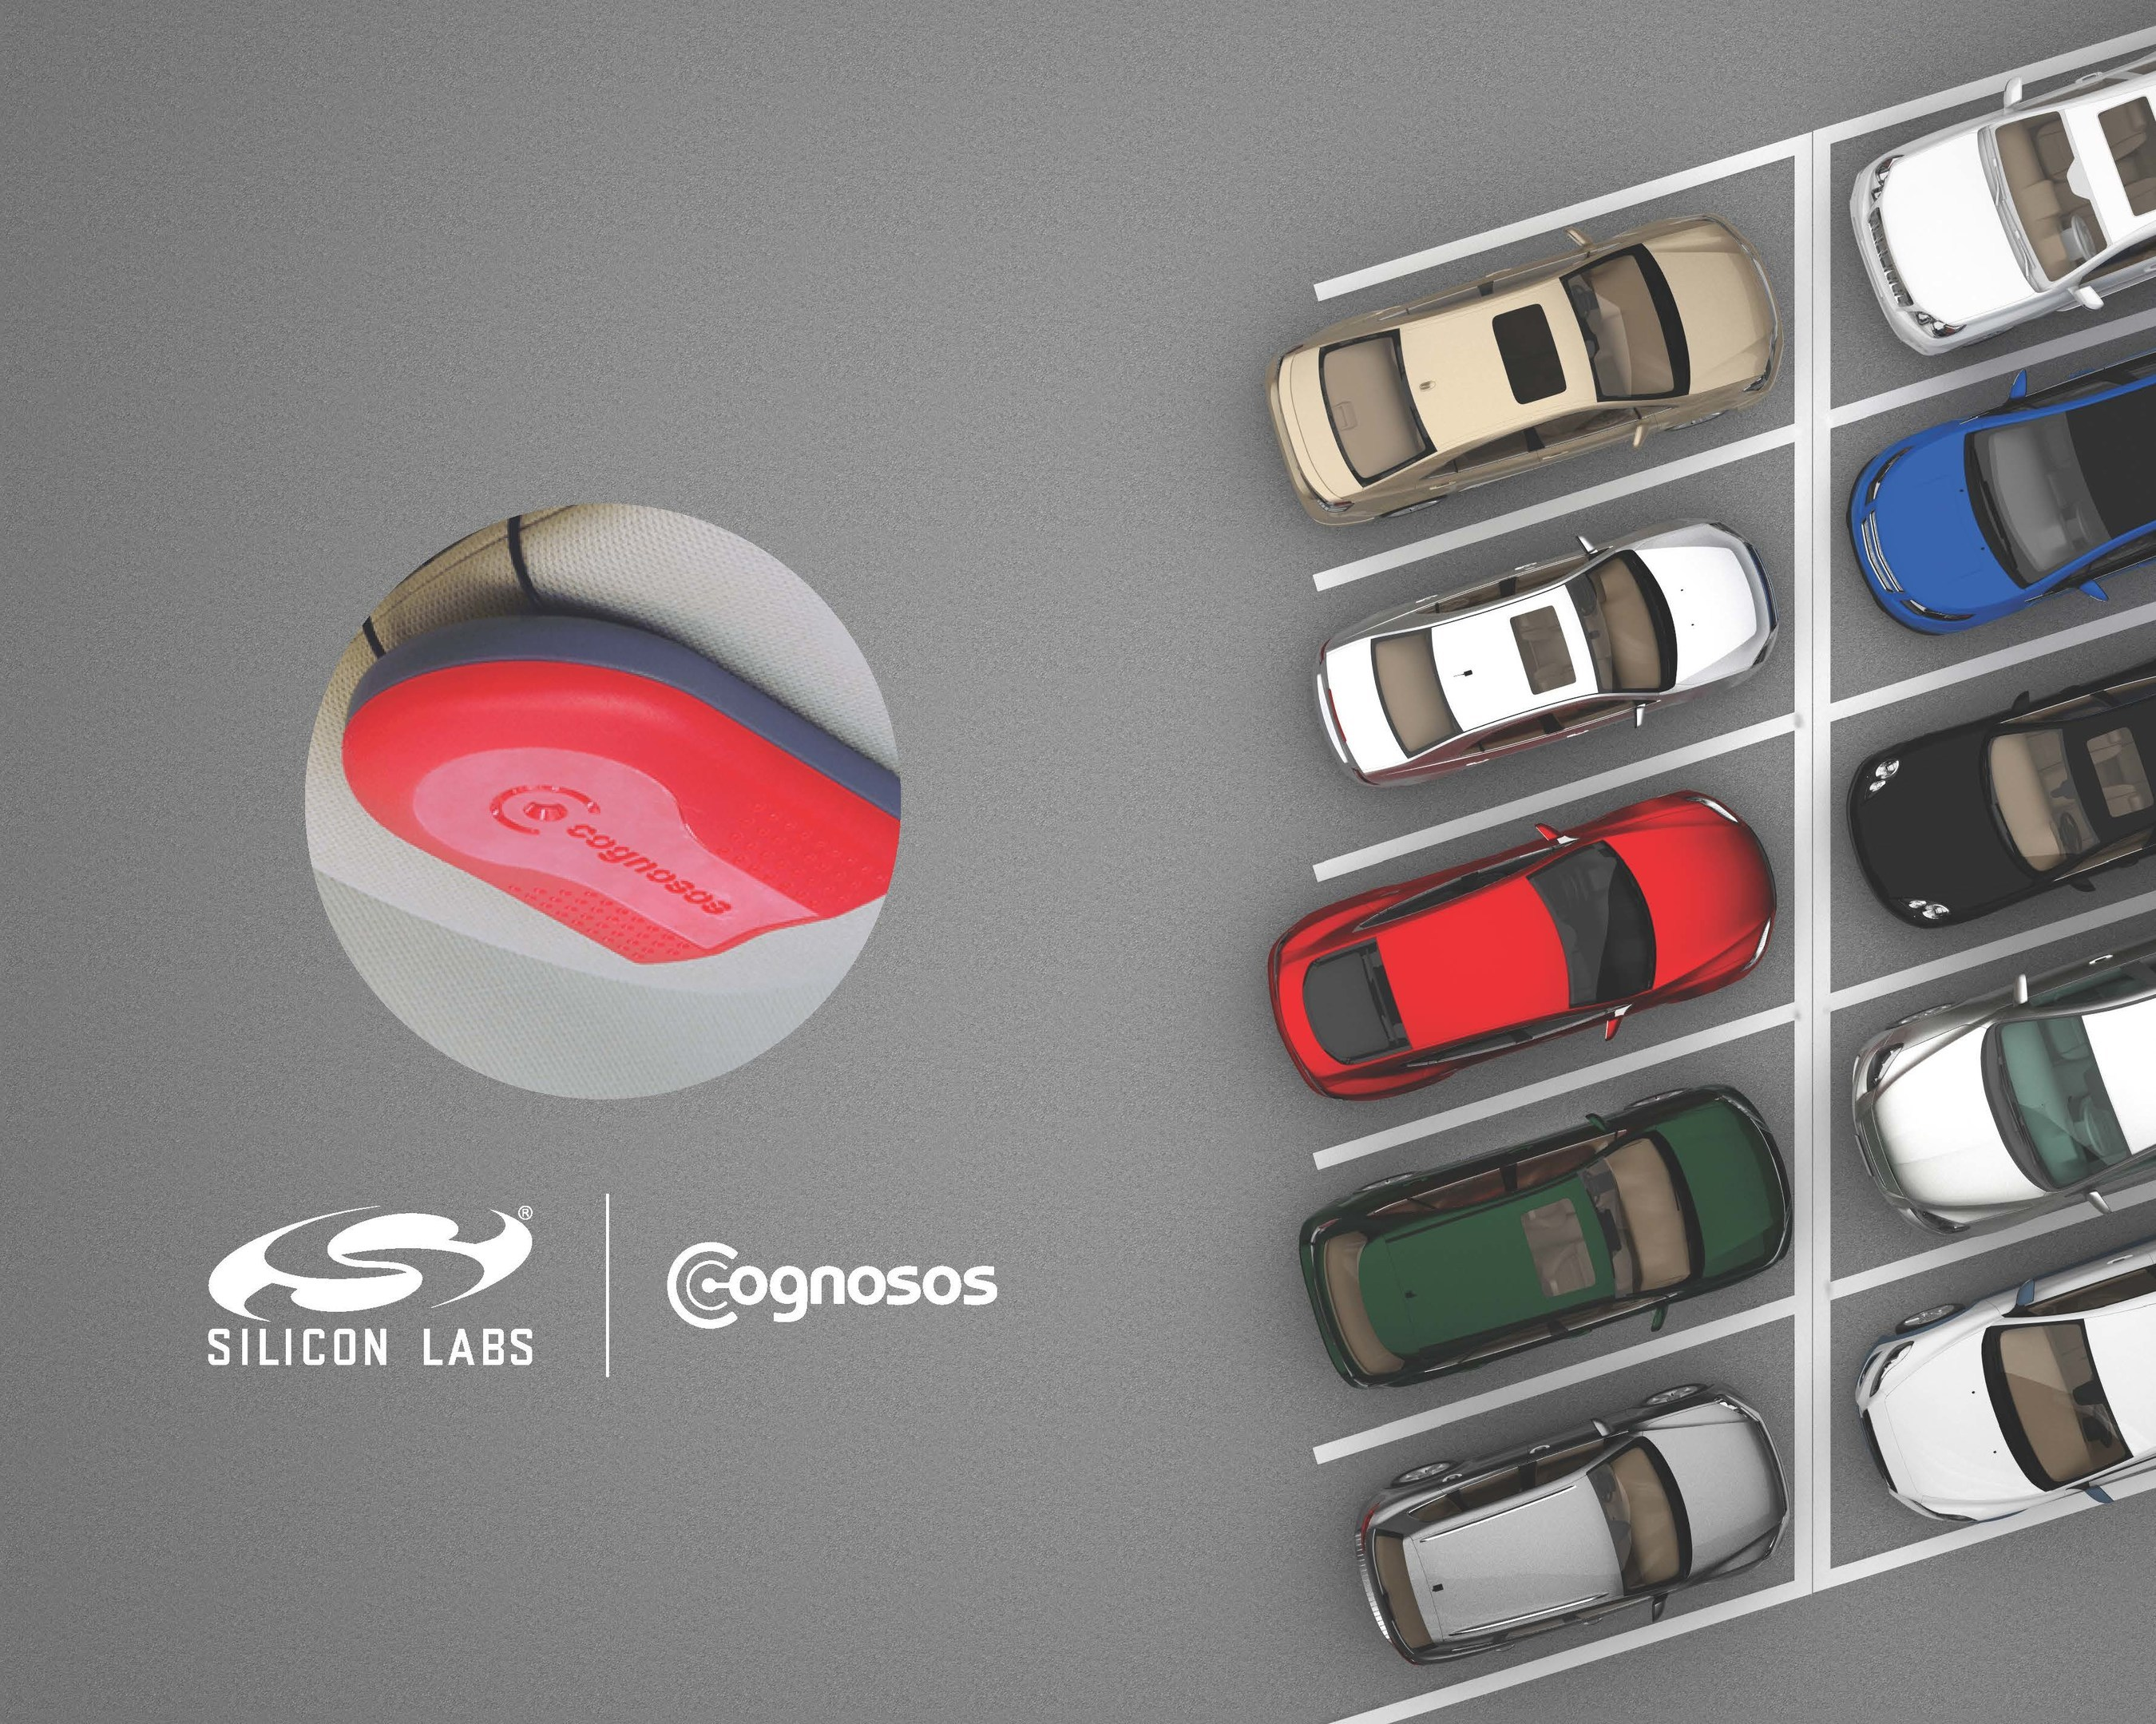 The Cognosos RadioTrax tag, built with Silicon Labs' Flex Gecko wireless SoC, pinpoints the location and movement history of cars stored in large parking lots and decks.